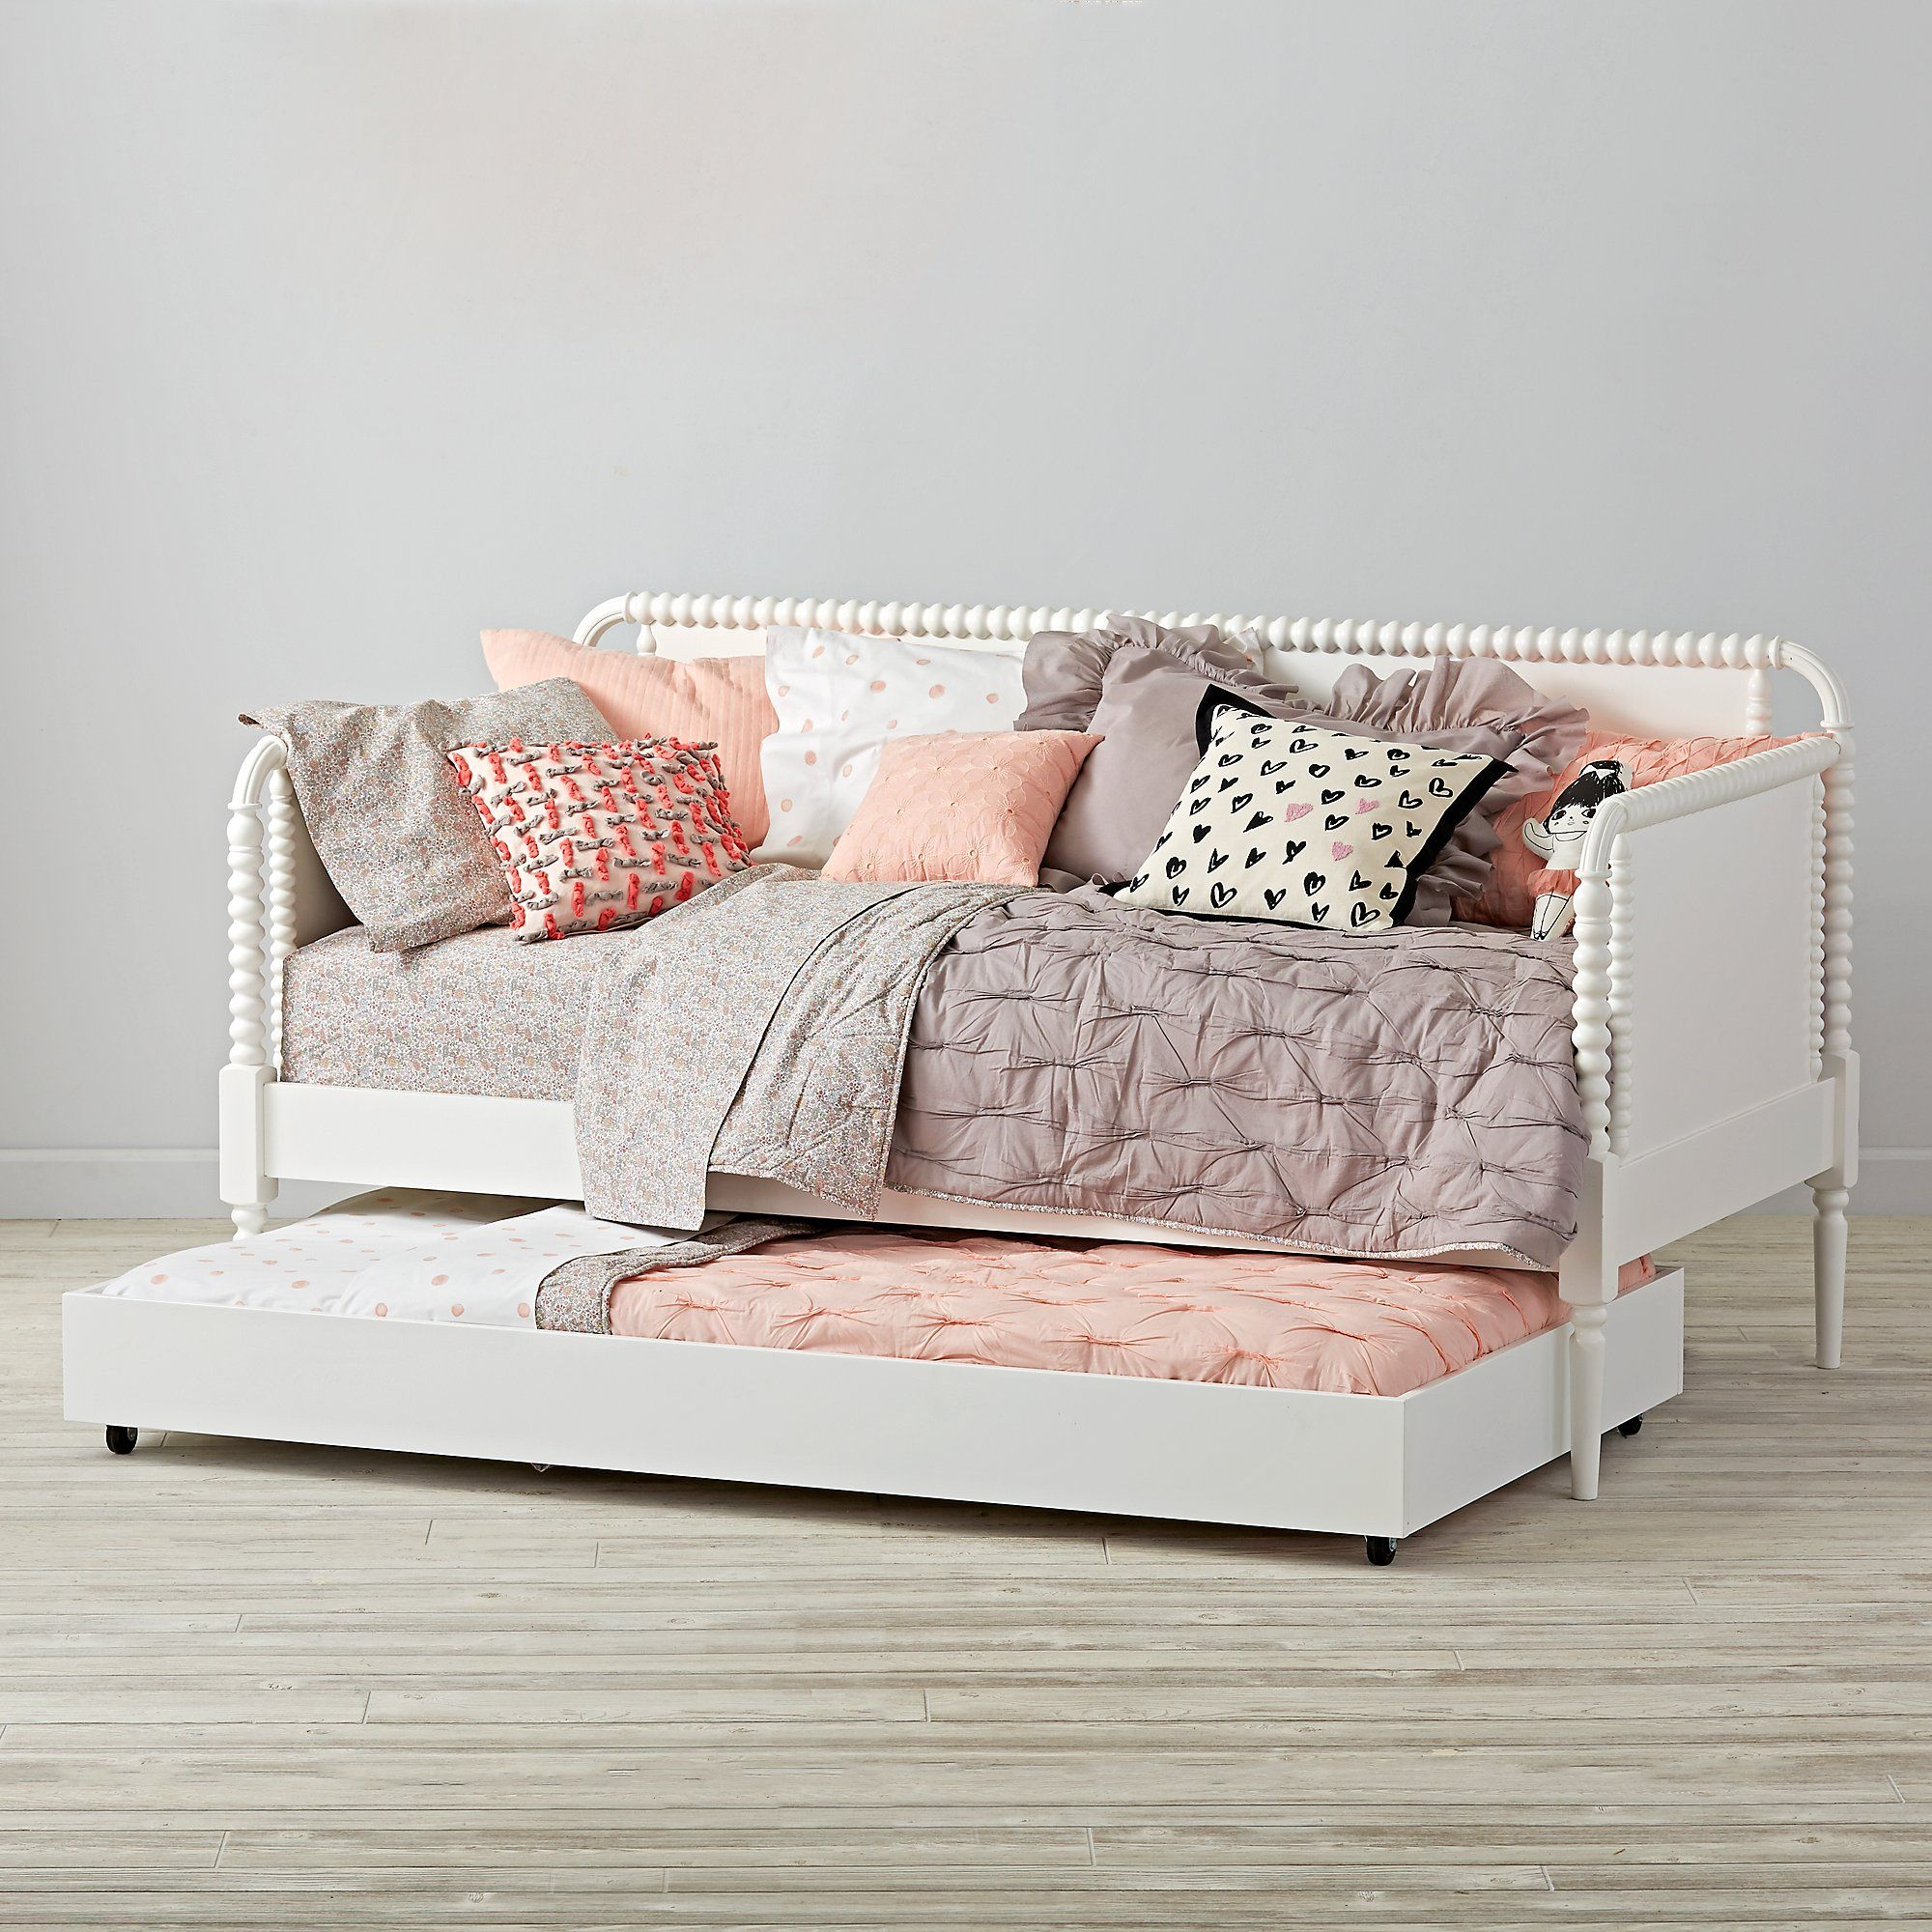 Jenny Lind Kids Daybed (White) Crate and Barrel Girls